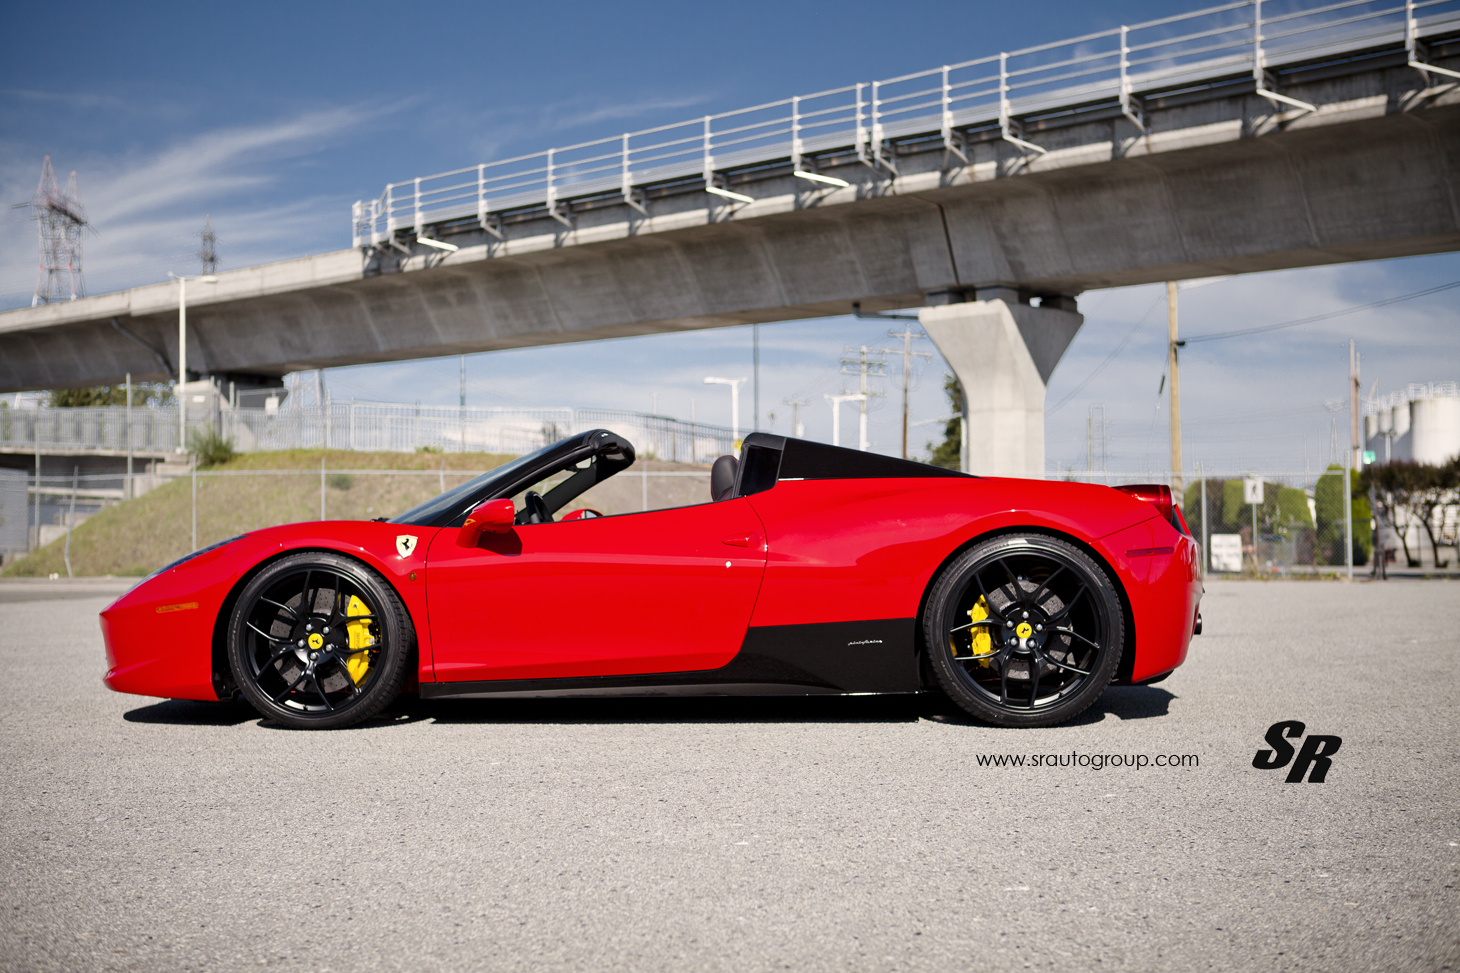 Ferrari F12 Hd Wallpapers Novitec Rosso Ferrari 458 Spider Released By Sr Auto